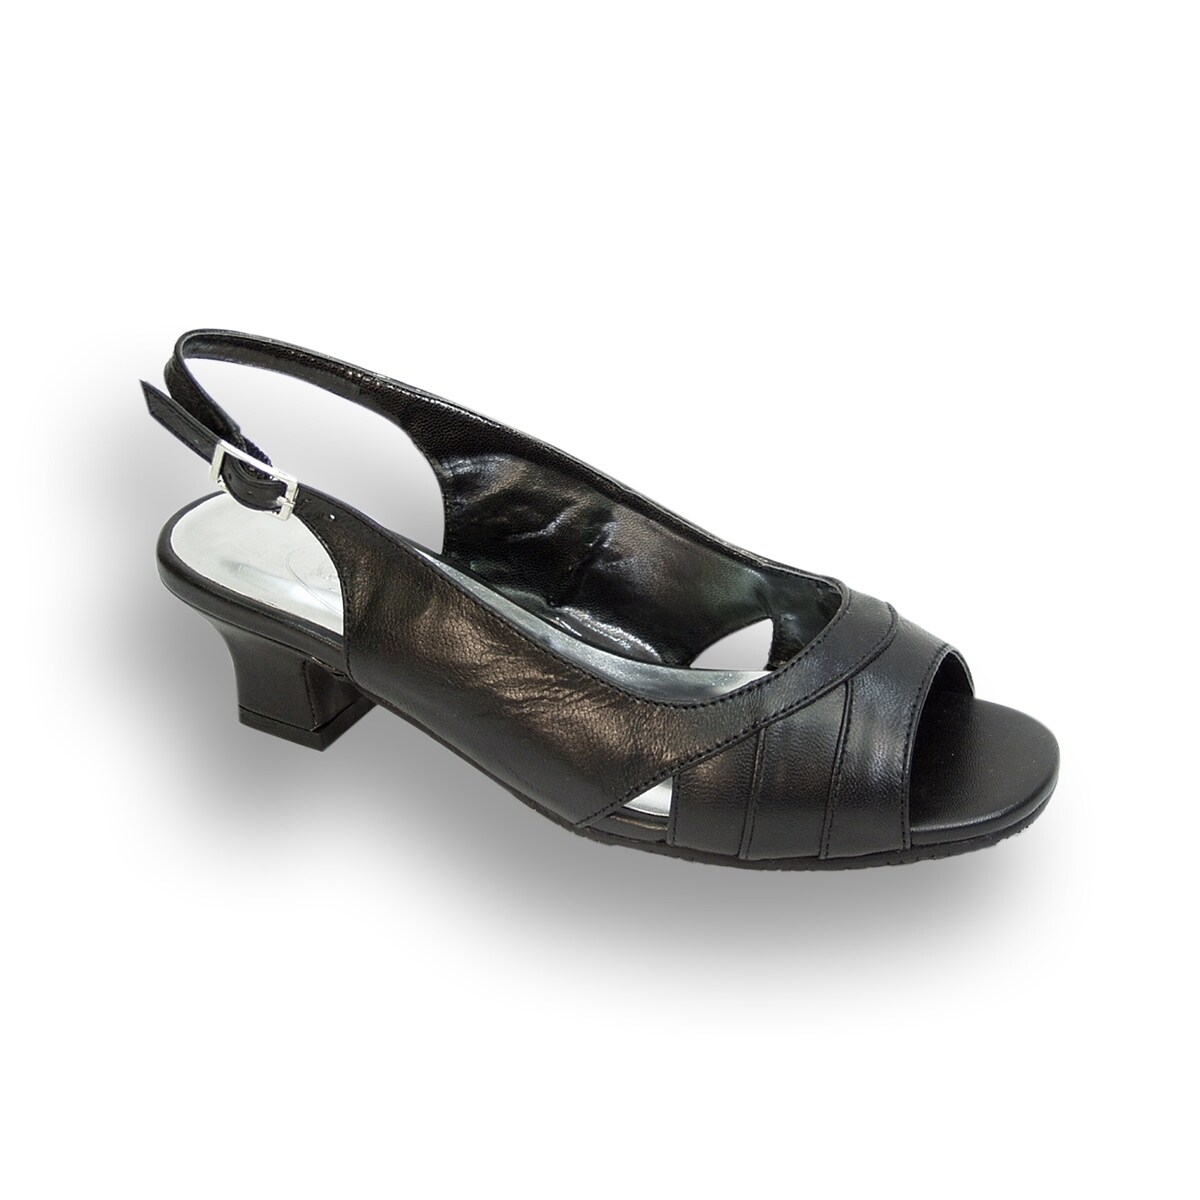 a5a20e6439aa2 Buy Size 9 pointed Women s Heels Online at Overstock